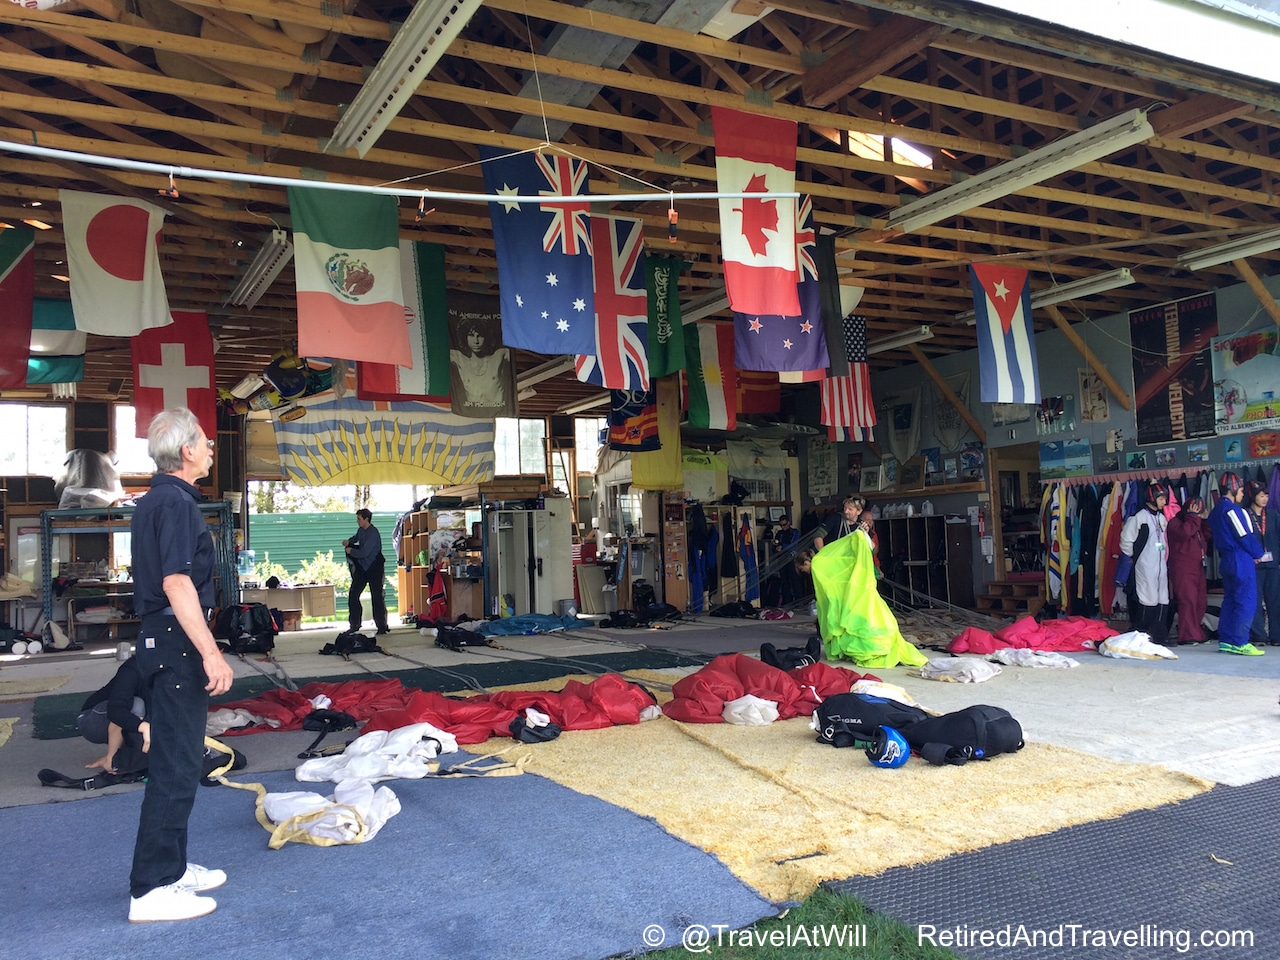 Packing Parachutes - Skydiving In The Rear View Mirror.jpg